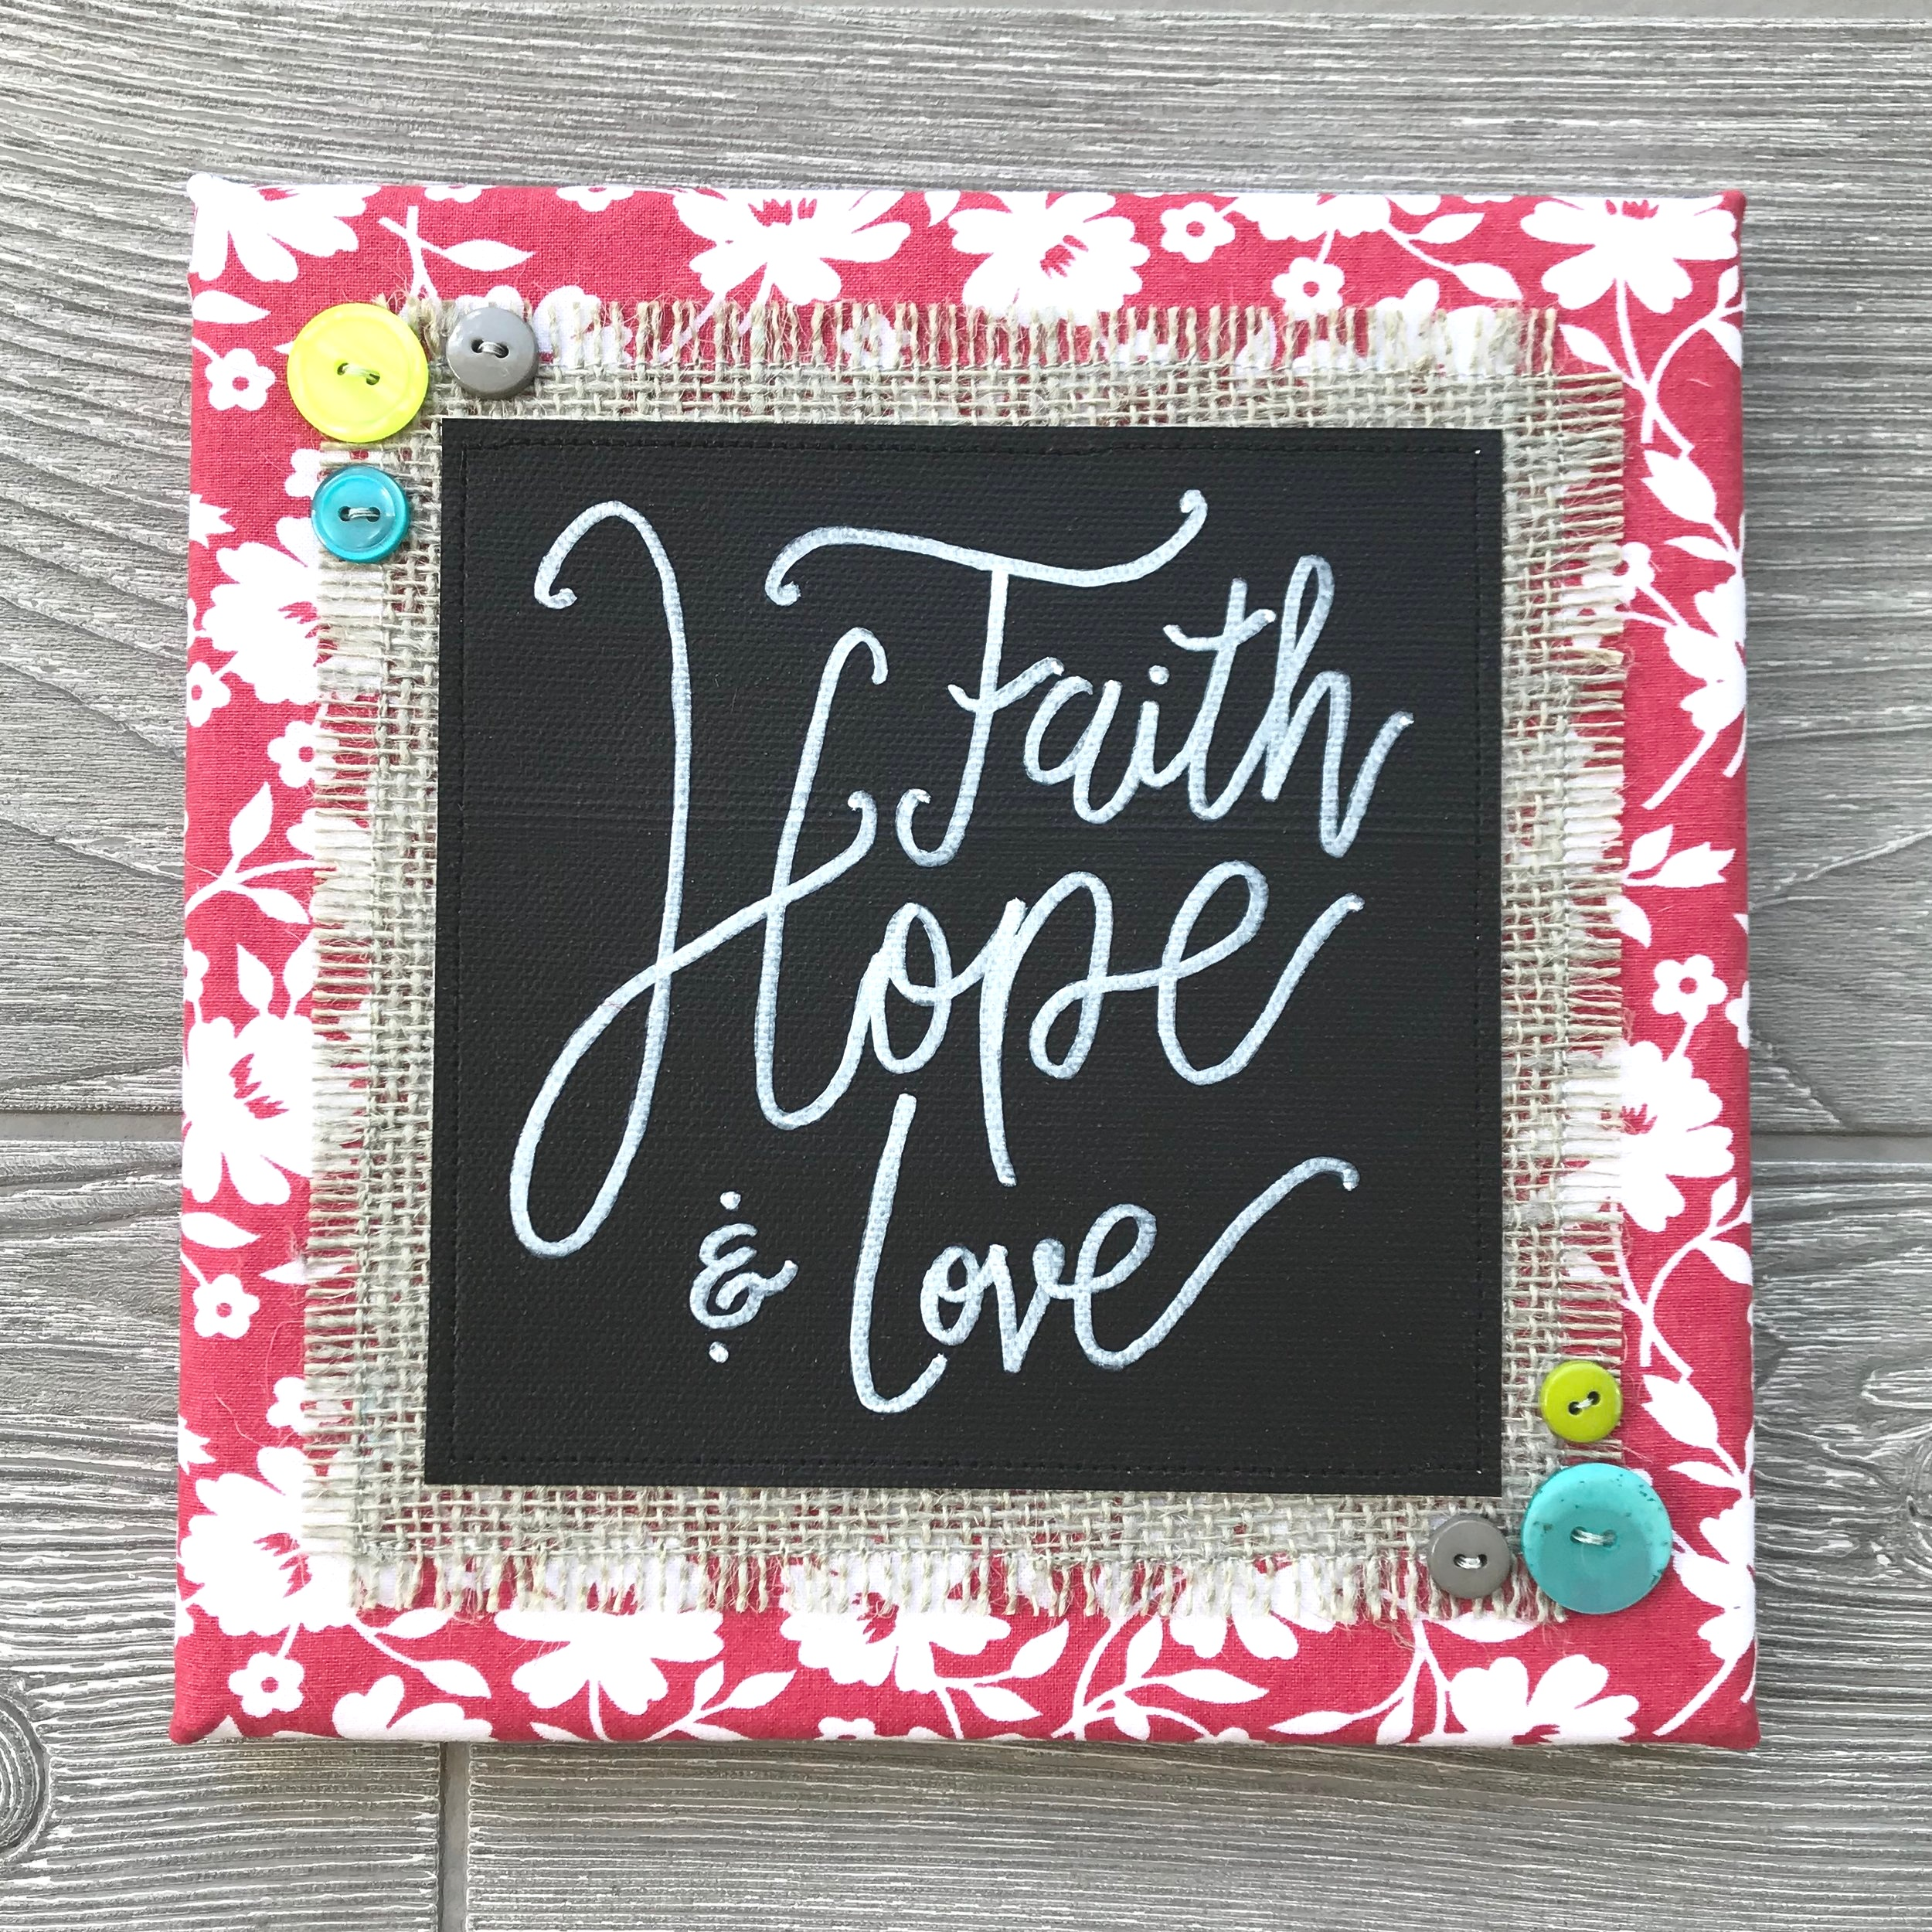 "Faith, Hope & Love - What is the meaning of life? These three words sum it up quite simply: Faith, Hope & Love. ""But the greatest of these is love.""8""x8"" Handmade Literary ArtworkElements: hand-painted and hand-lettered canvas, colorful burlap, patterned fabric, coordinating buttons, wood frame, claw hangerFeatured Scripture: 1 Corinthians 13:13Price: $25 (includes US-based shipping)"